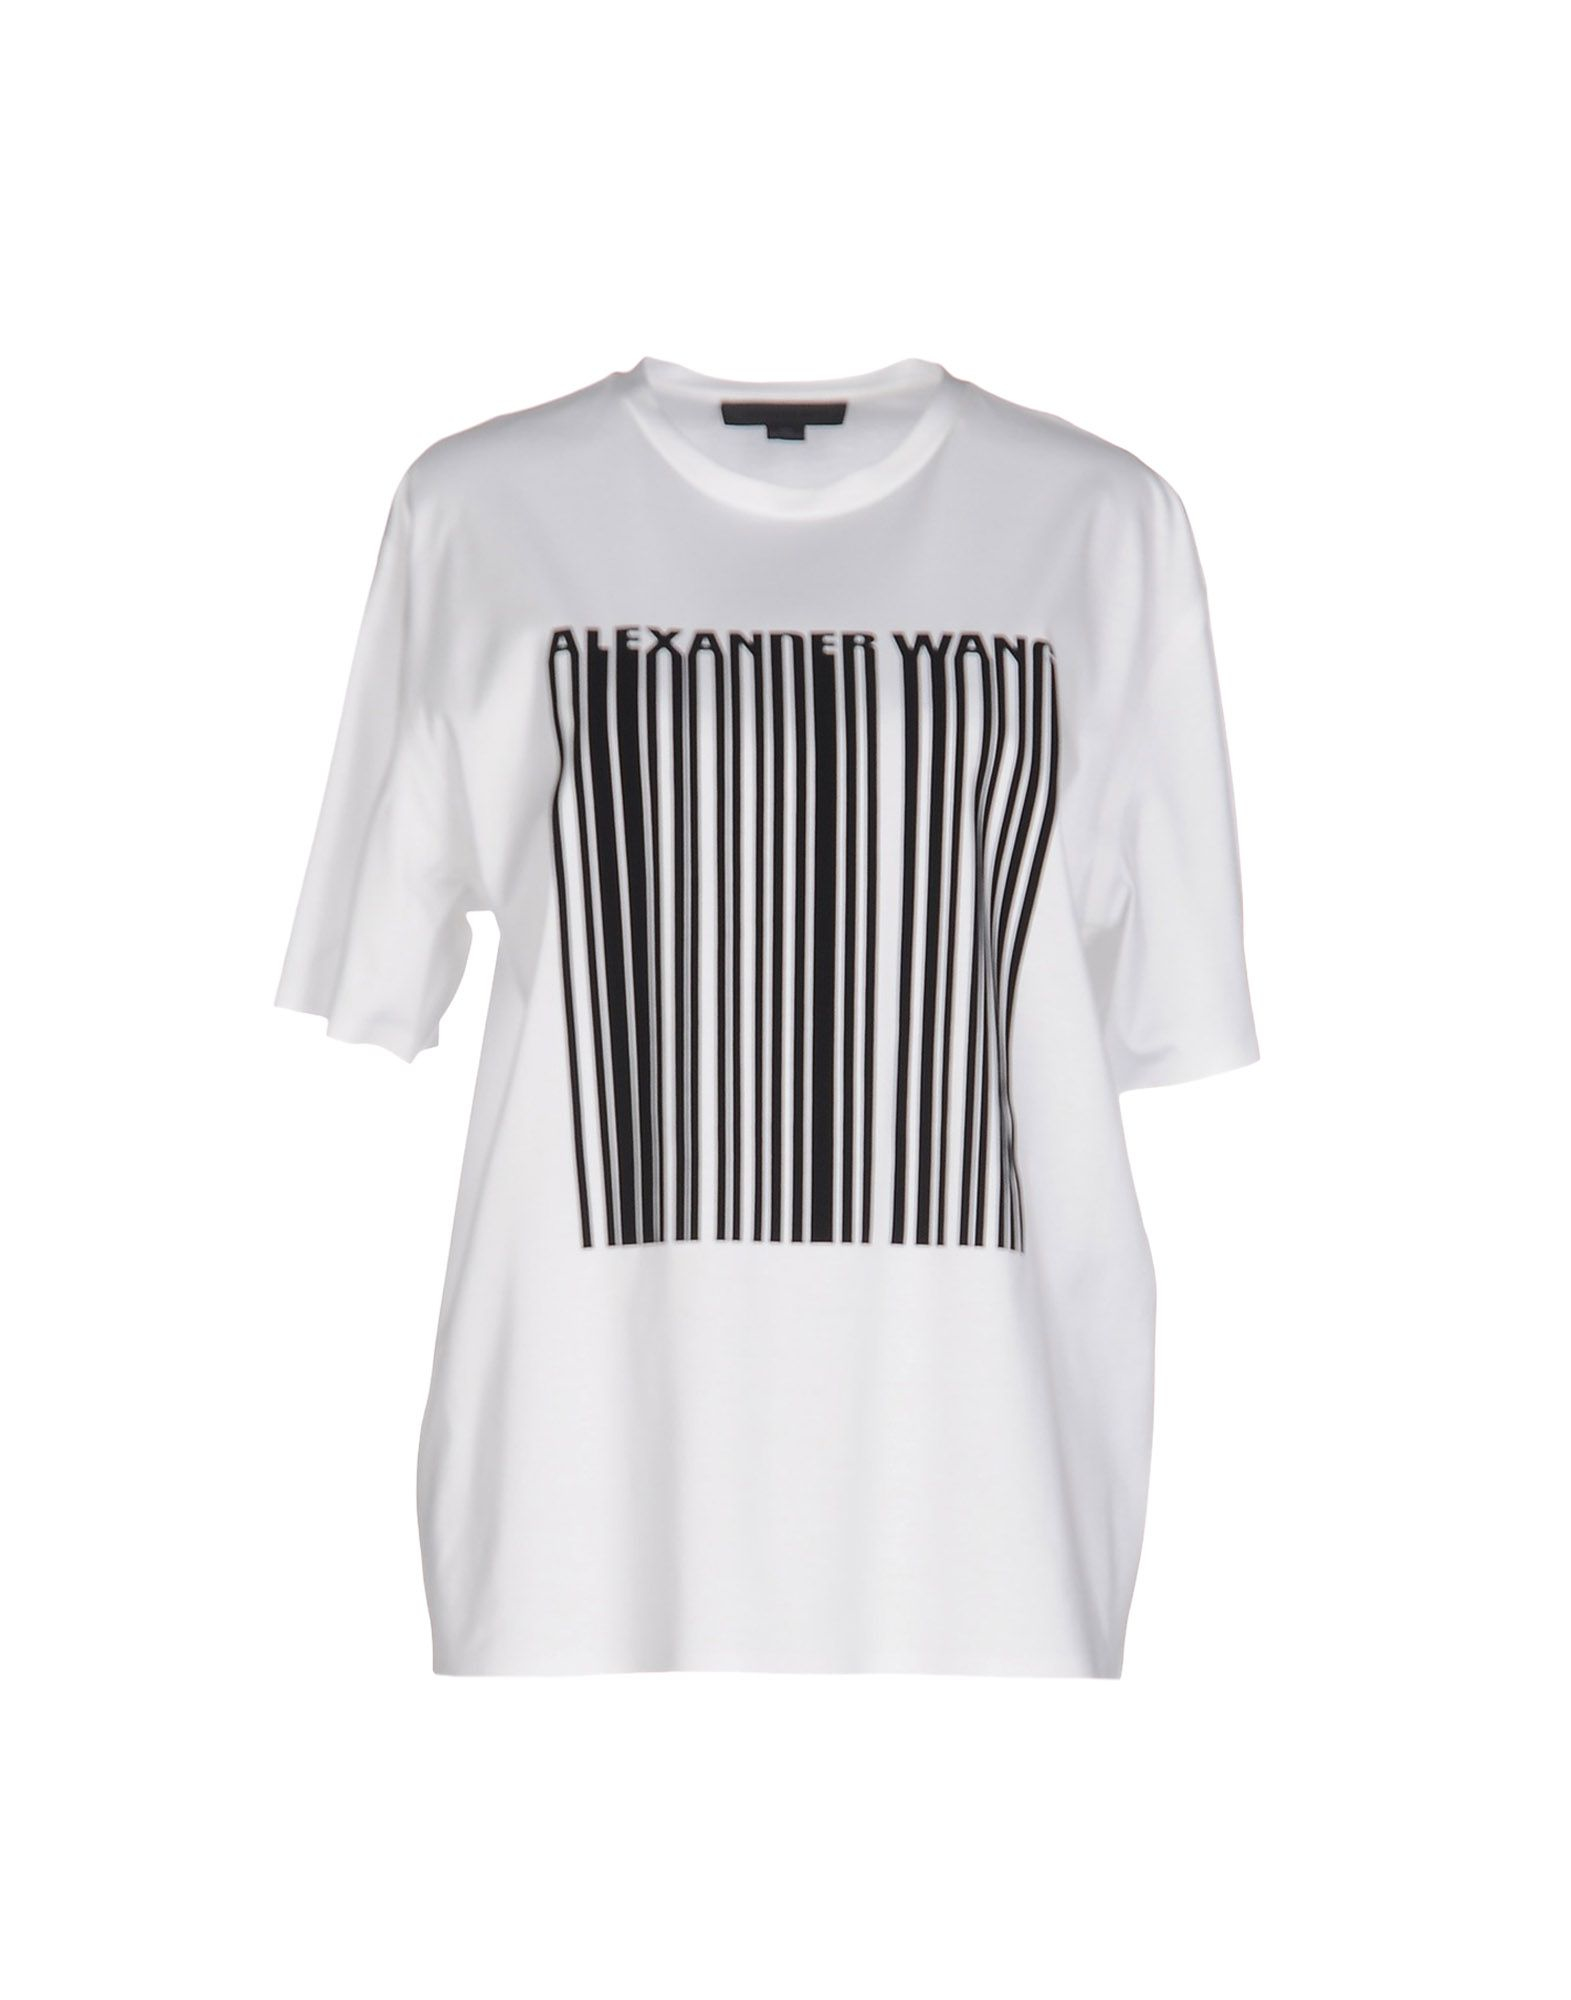 alexander wang t shirt in white lyst